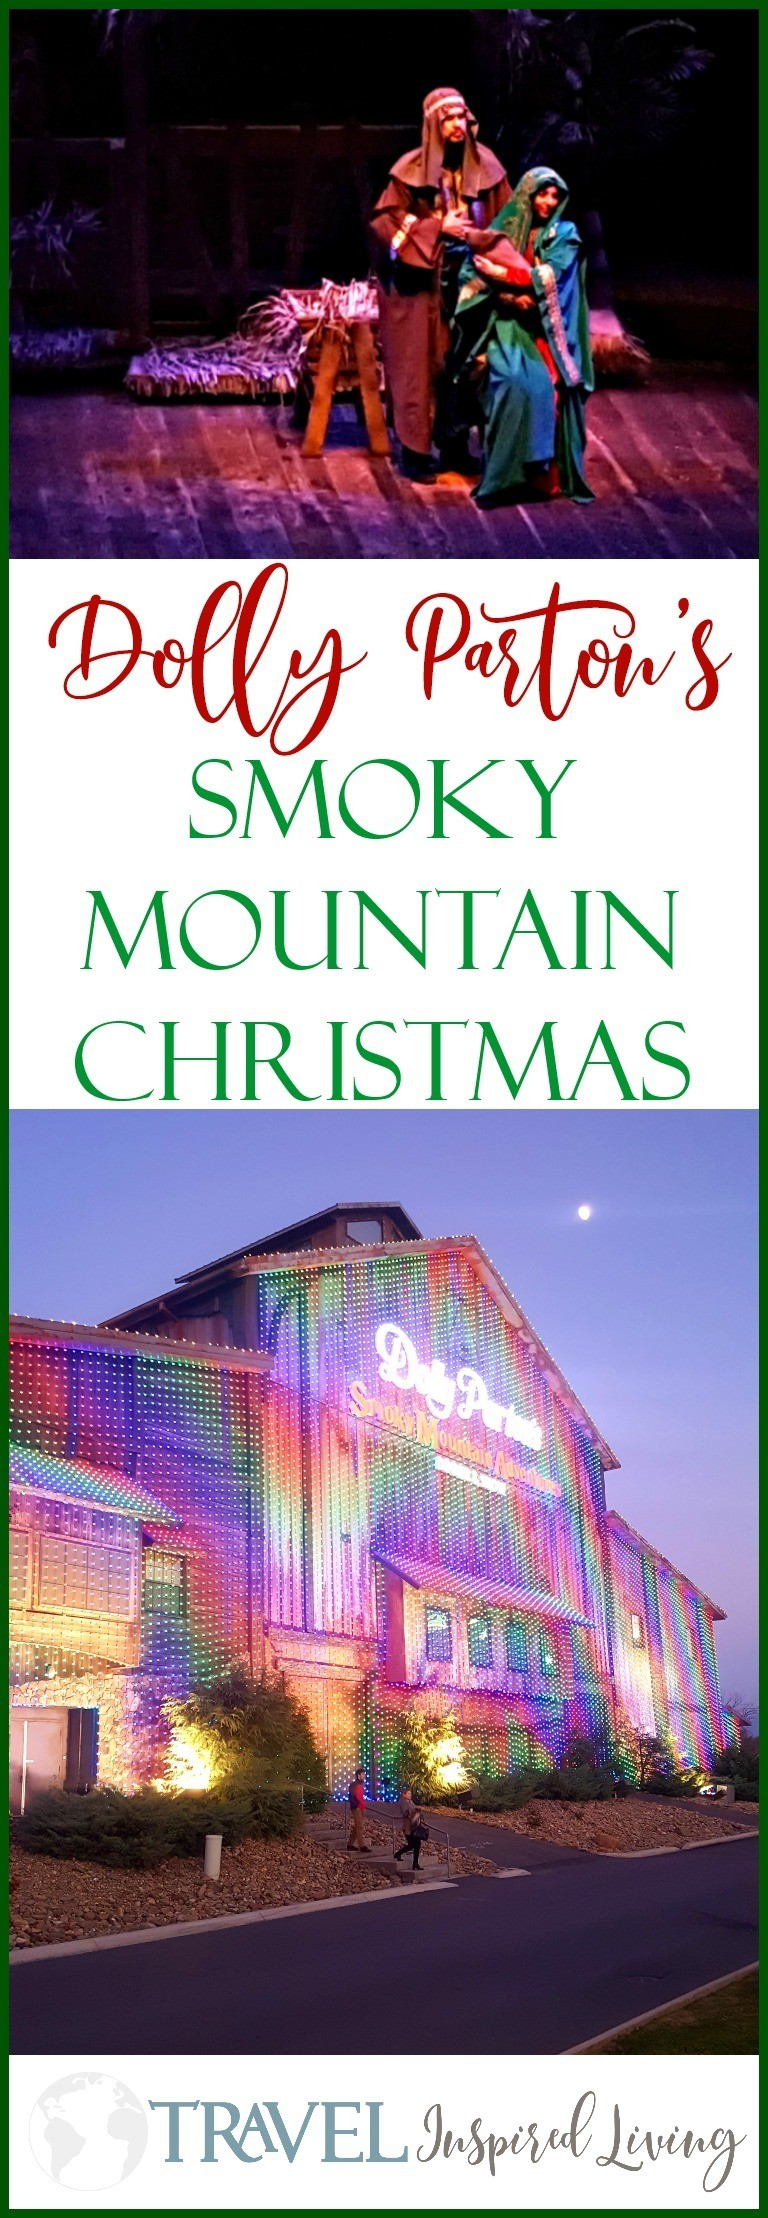 A Review of Dolly Parton's Smoky Mountain Christmas show in Pigeon Forge, Tennessee.